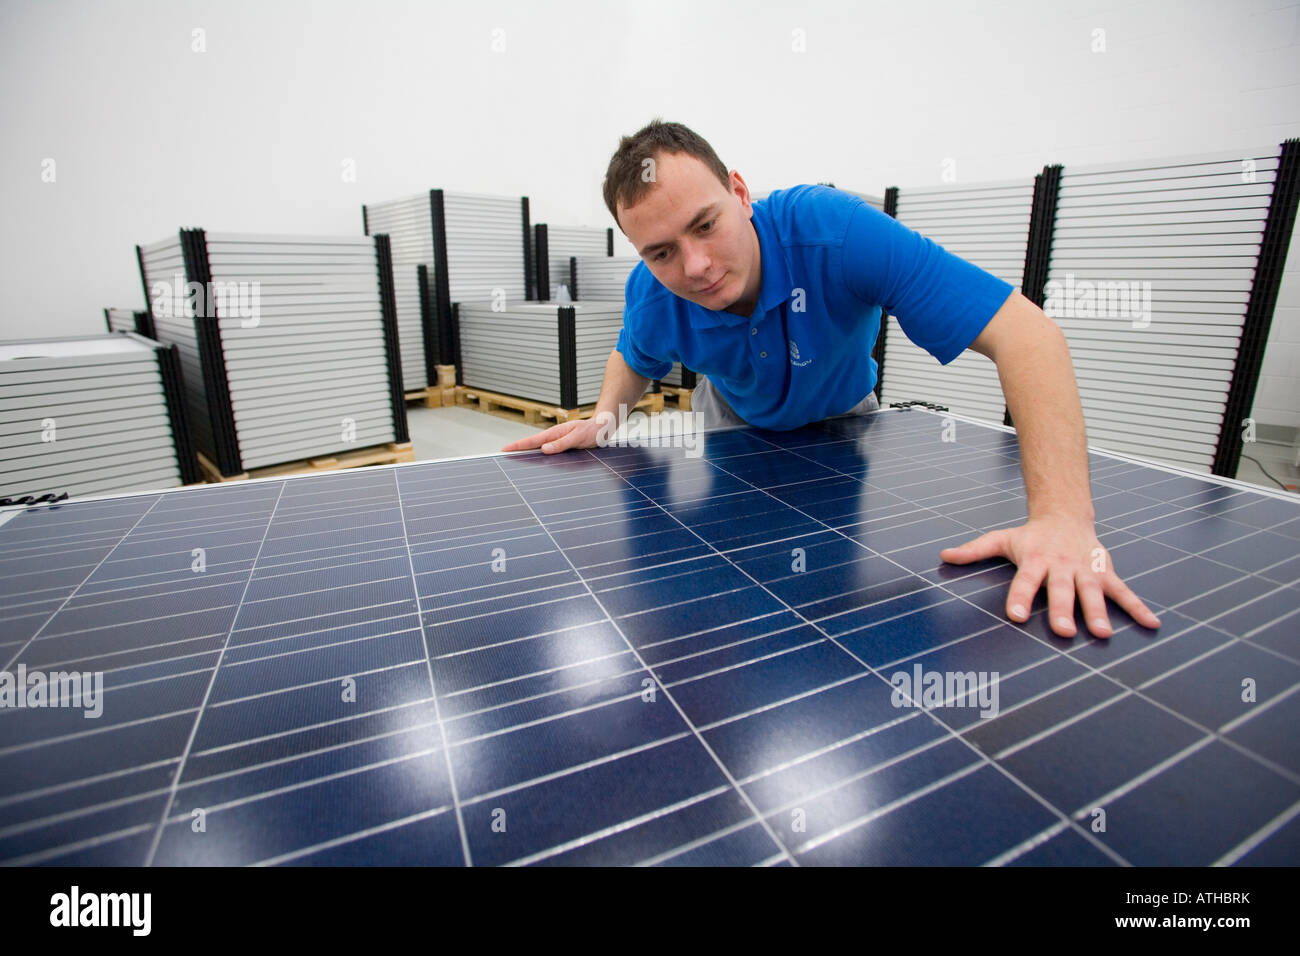 Conergy SolarModule GmbH Co KG production de modules solaires Photo Stock